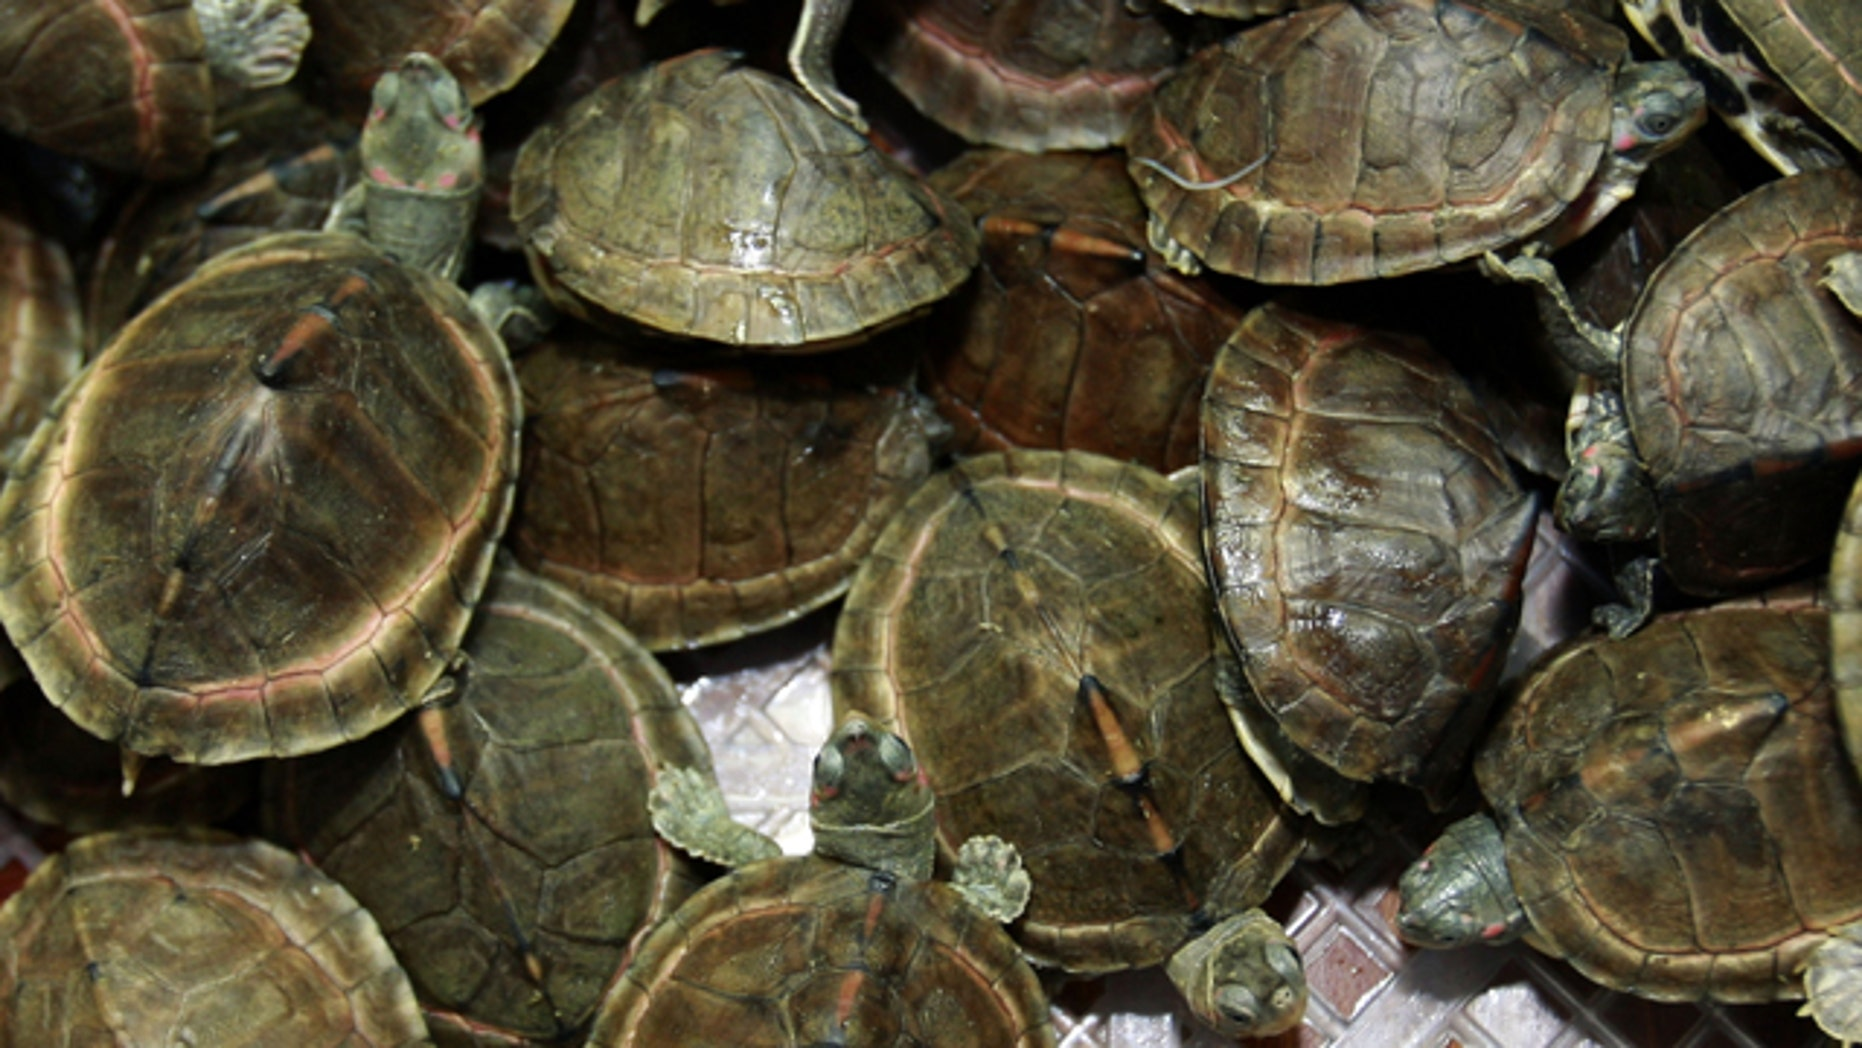 June 2: Mud turtles crawl inside a basket as they are shown to the press during a news conference by Thai customs in Bangkok, Thailand.